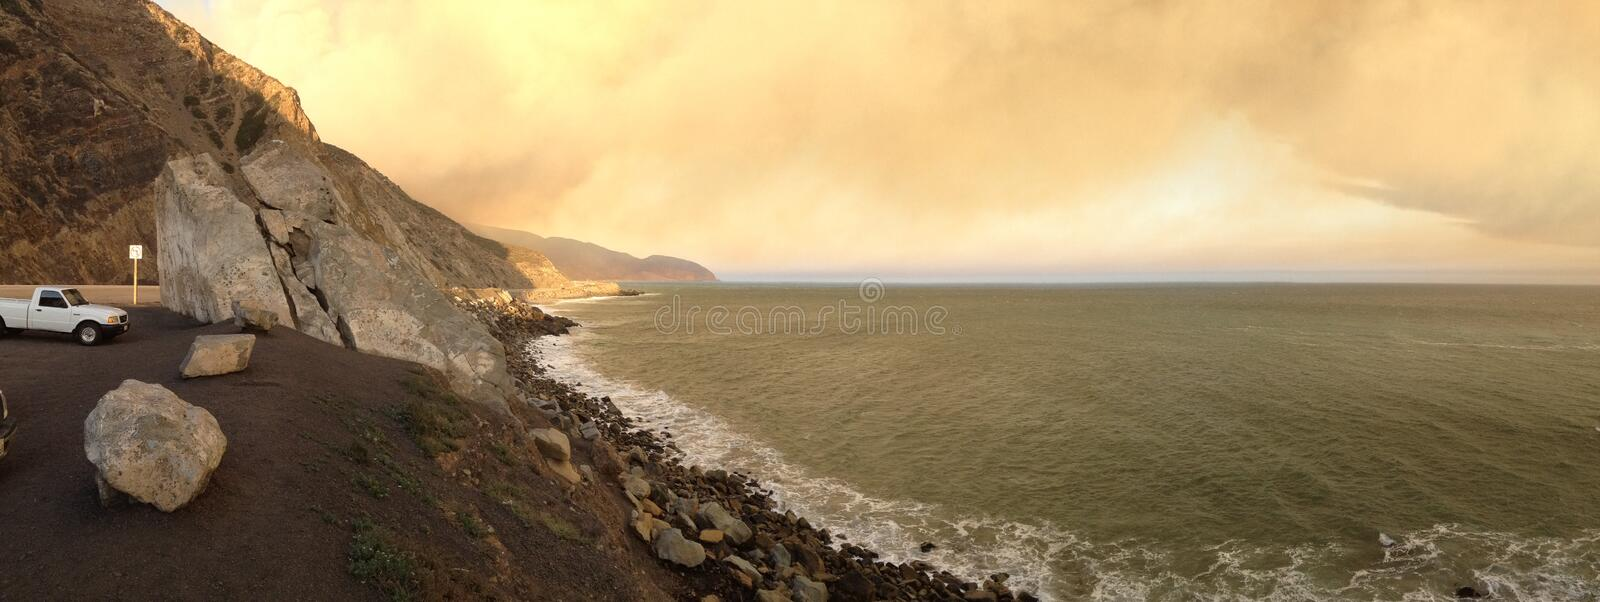 Pacific Coast Highway on Fire, Point Mugu royalty free stock photography